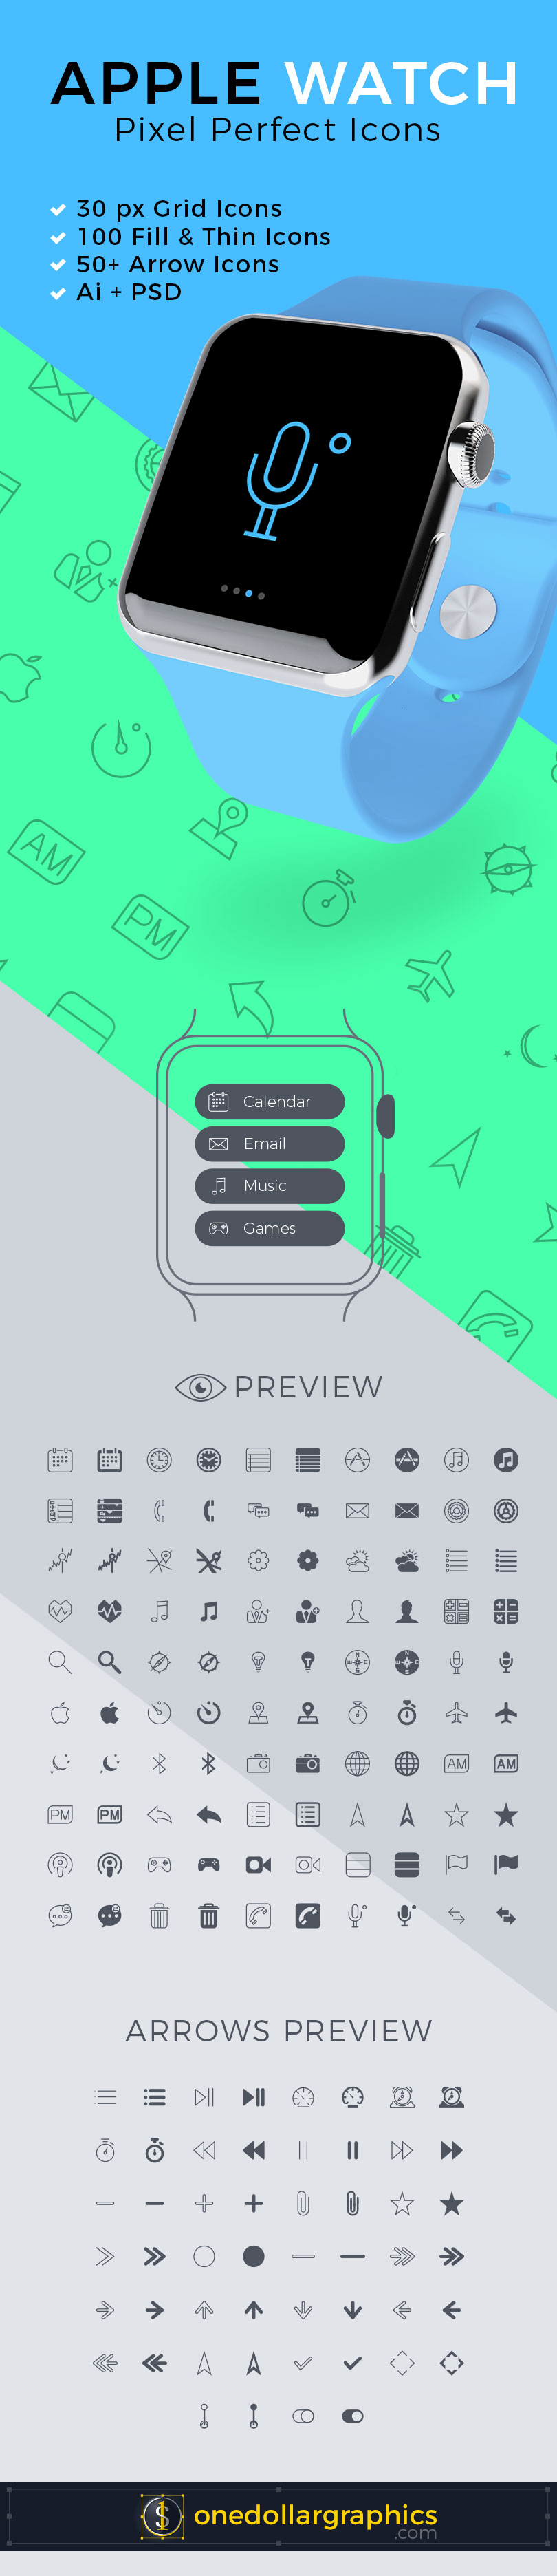 150-apple-watch-pixel-perfect-icons